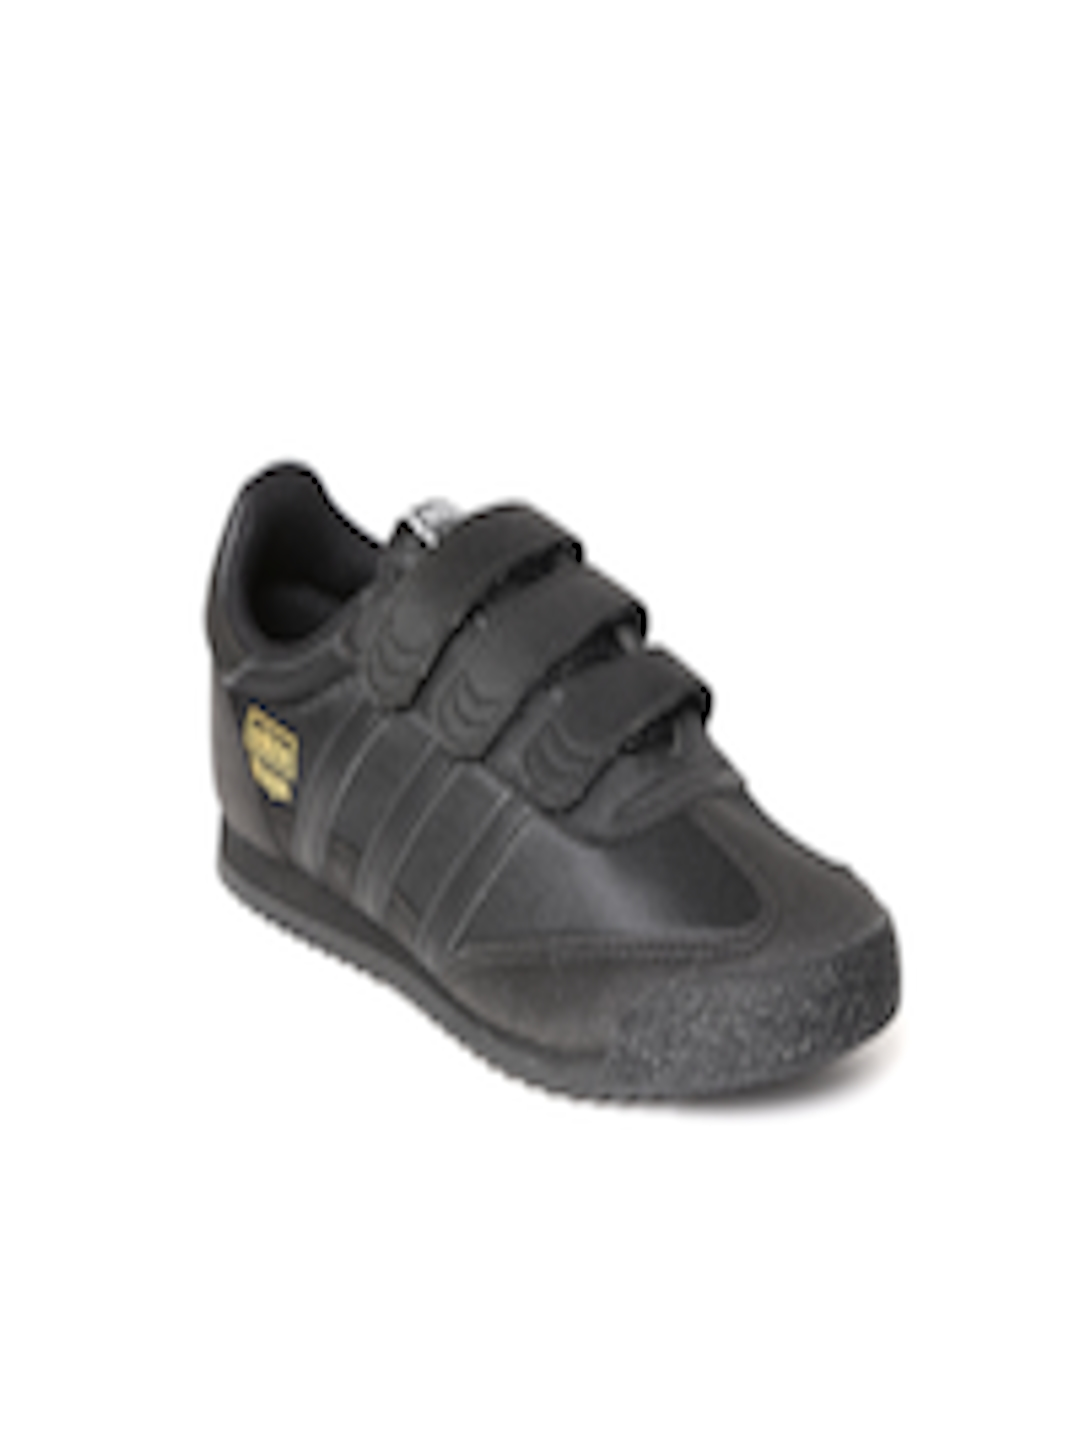 uk store the sale of shoes cheap for sale Buy ADIDAS Originals Kids Black Dragon OG CF C Sneakers - - Footwear for  Unisex